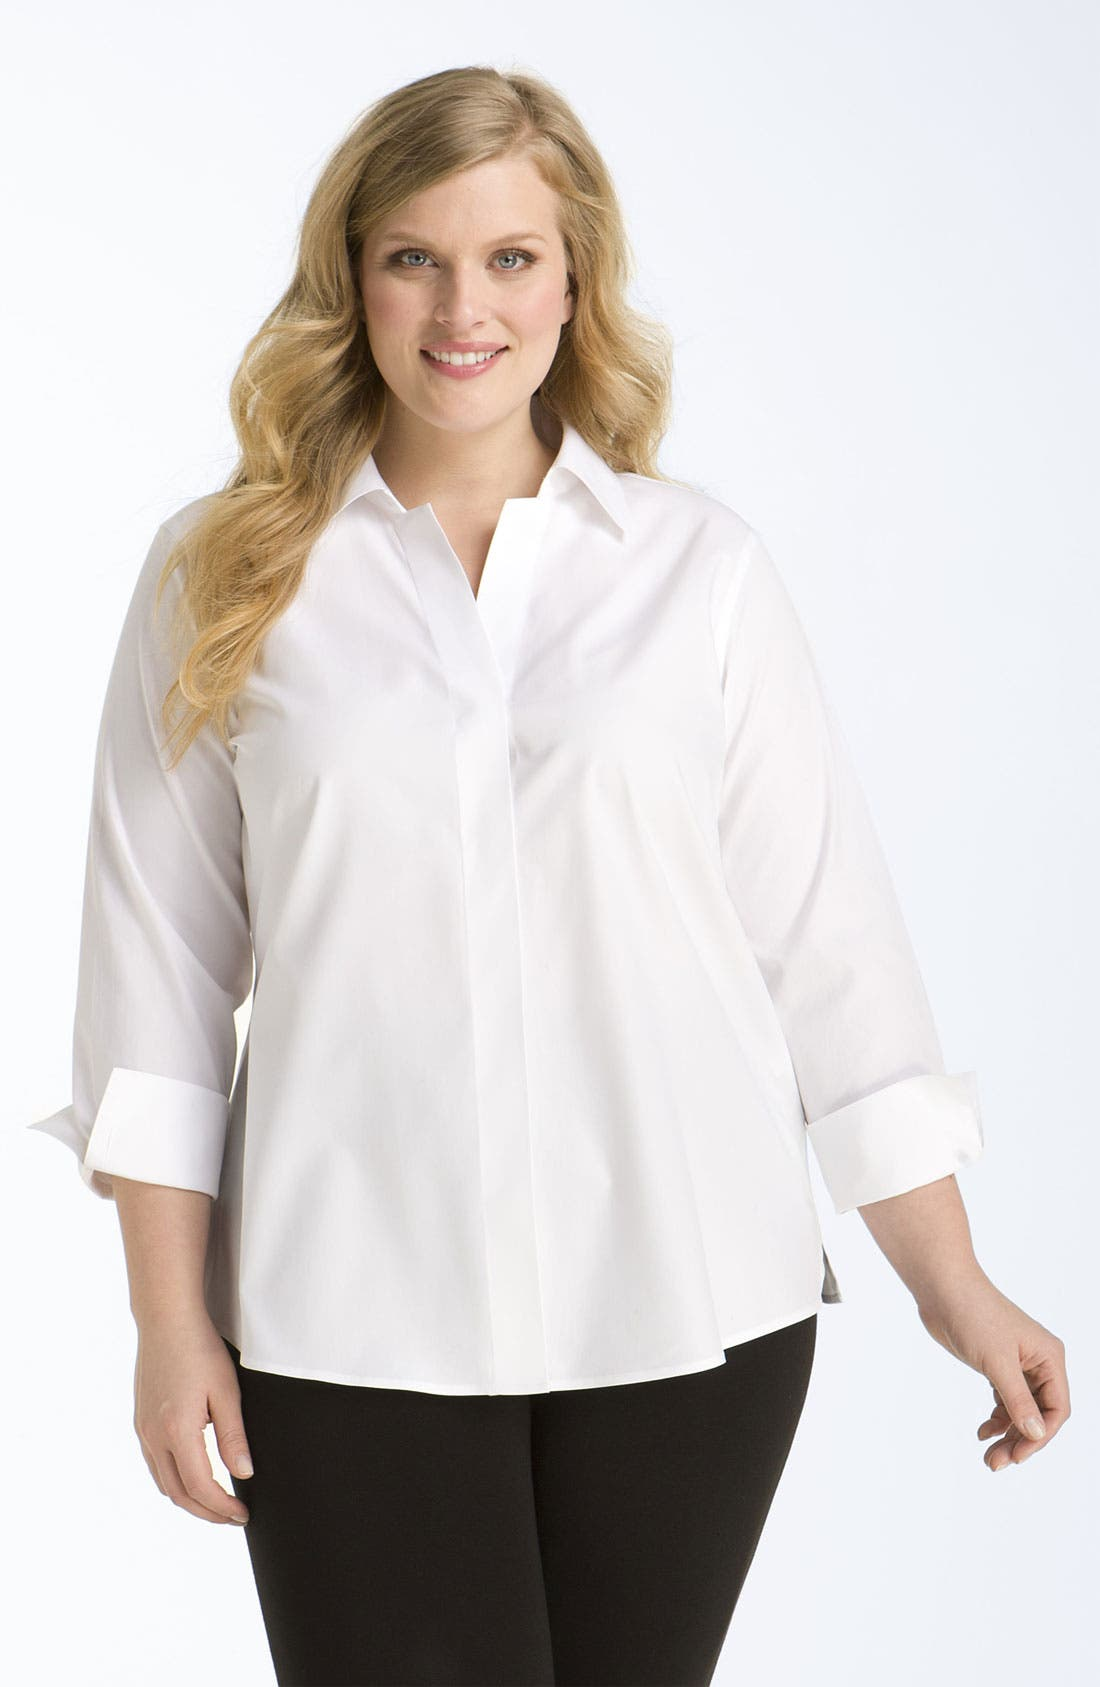 Alternate Image 1 Selected - Foxcroft Wrinkle Free Shaped Shirt (Plus Size)